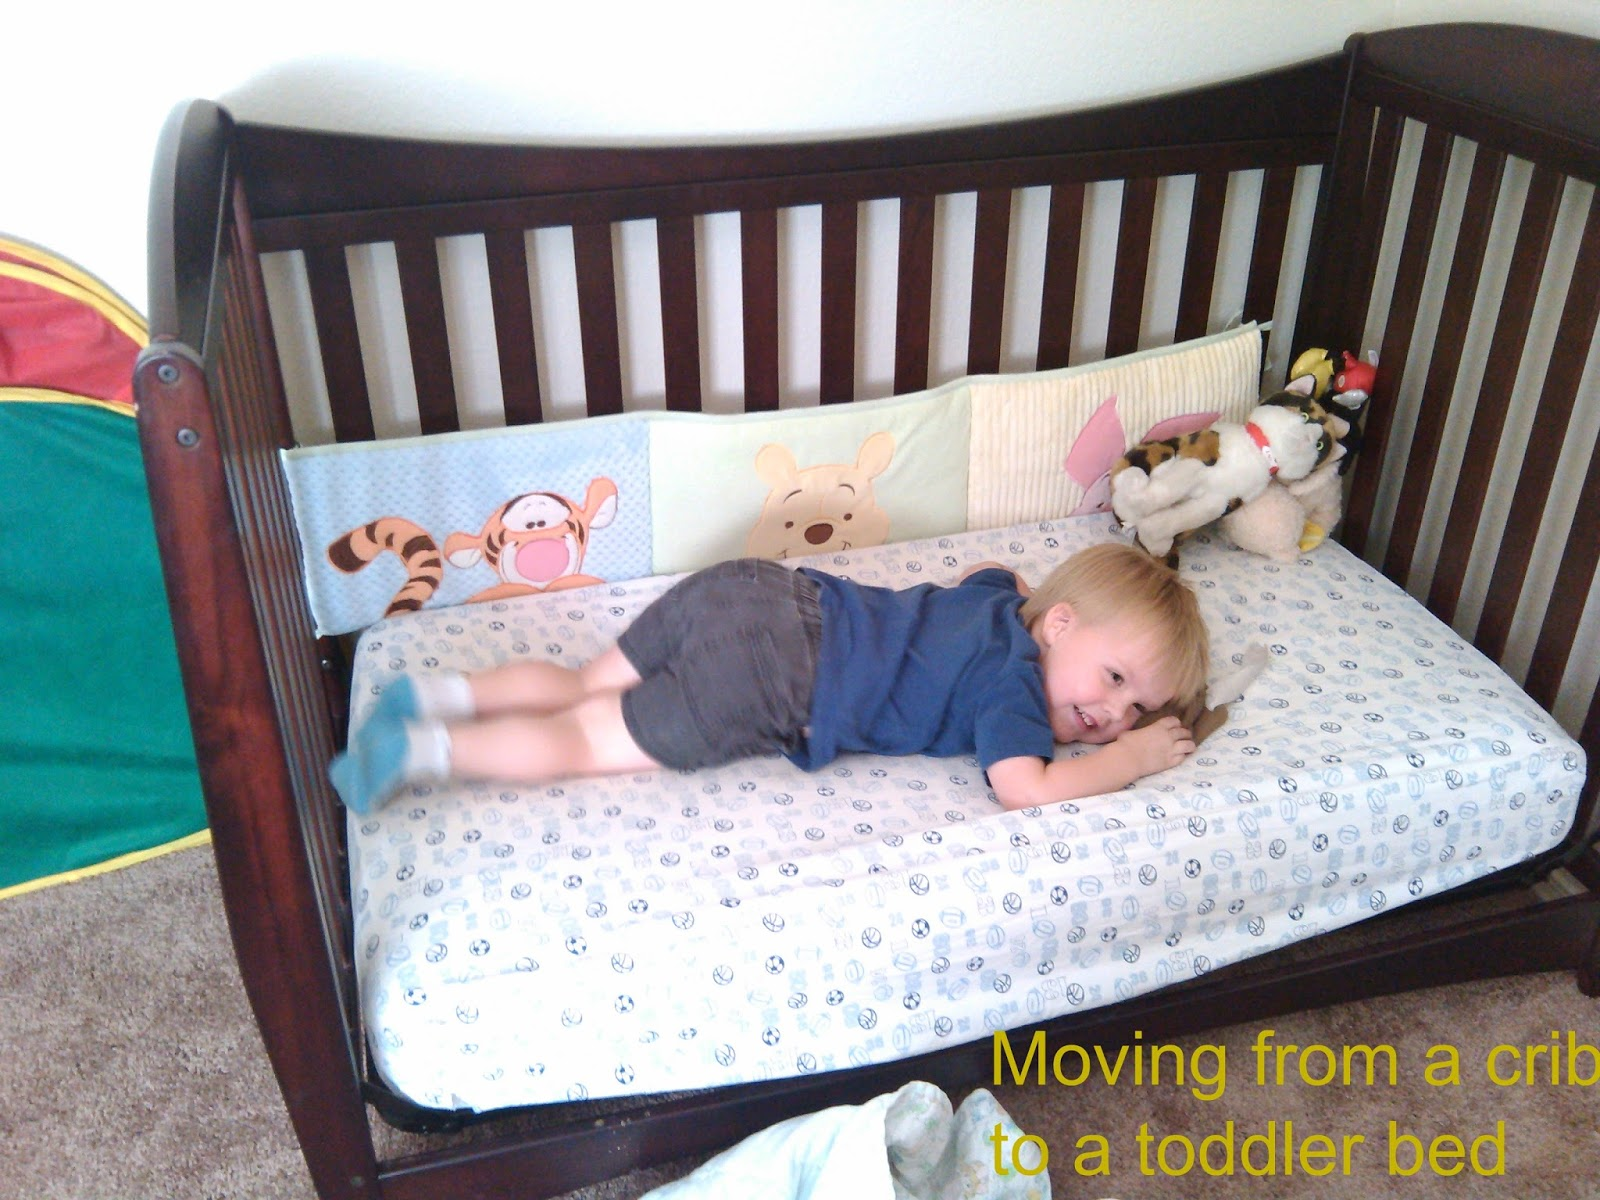 Moving From A Crib To Toddler Bed, When To Go From Crib Toddler Bed